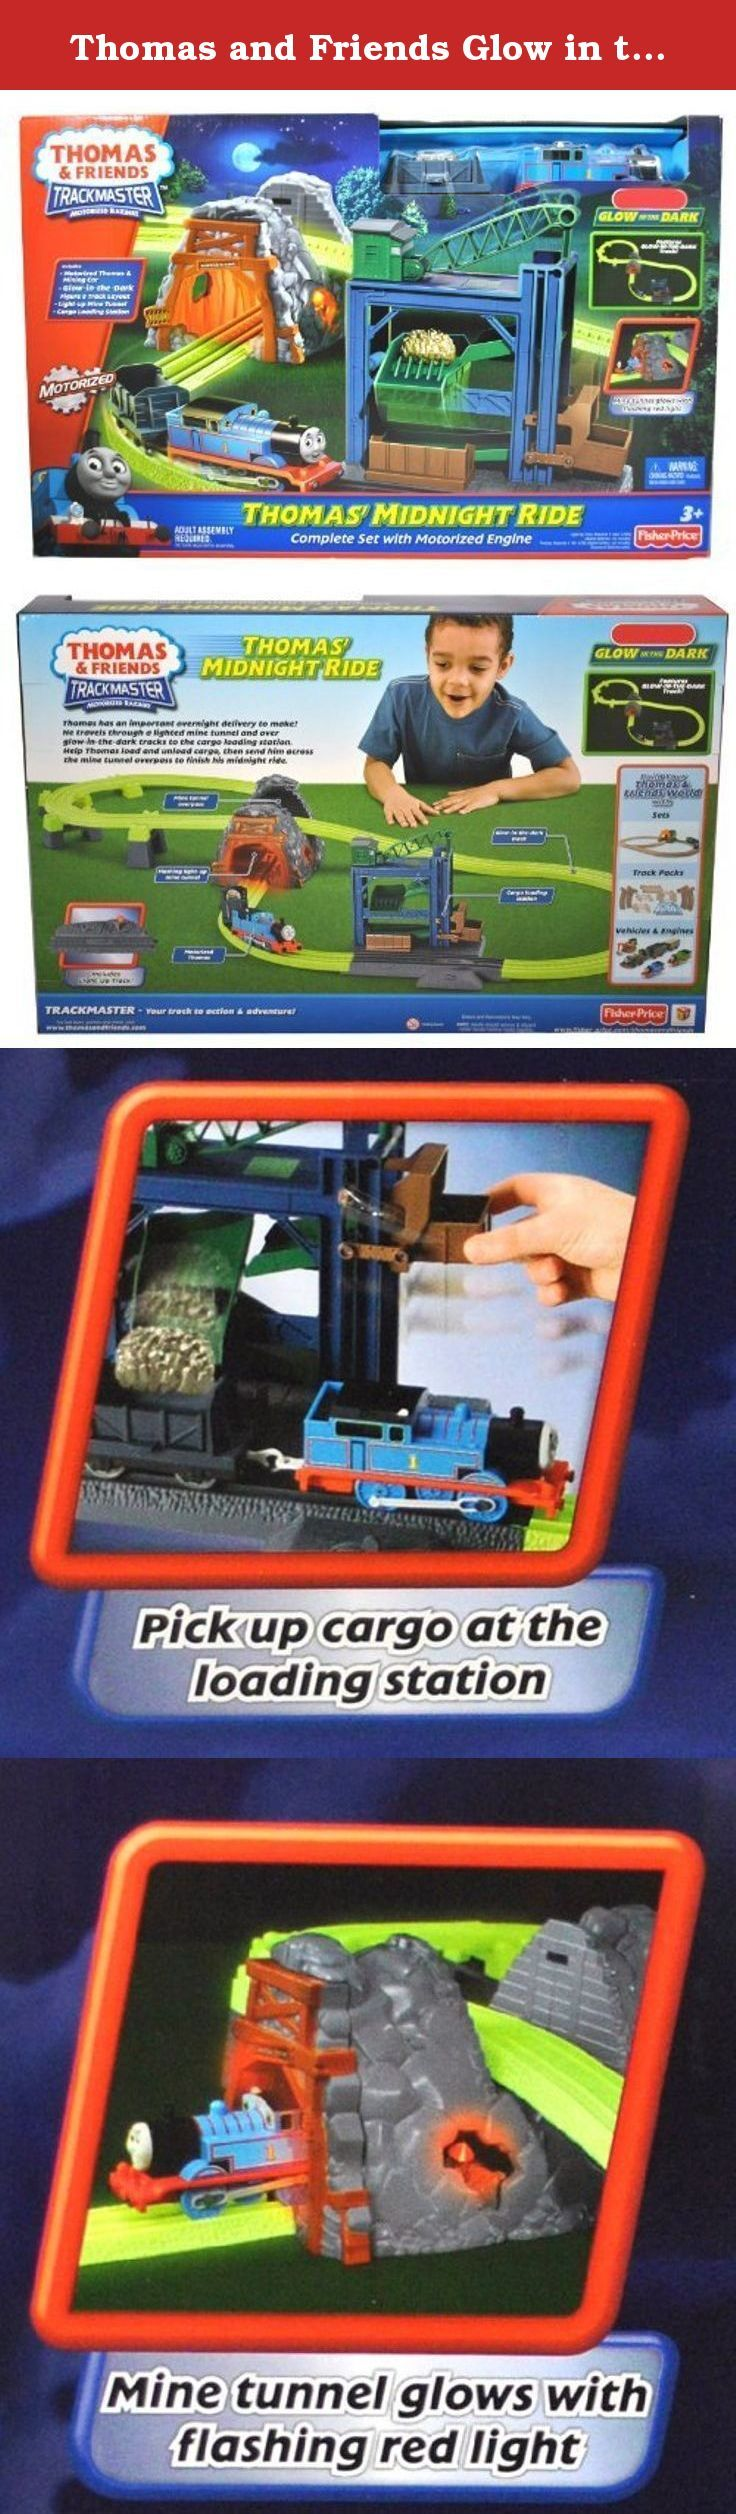 Thomas and Friends Glow in the Dark Series Trackmaster Motorized Railway Battery Powered Tank Engine Playset - THOMAS' MIDNIGHT RIDE with Thomas Engine and Mining Car, Glow-in-the Dark Figure 8 Track Layout, Light Up Mine Tunnel and Cargo Loading Station. Thomas has an important overnight delivery to make! He travels through a lighted mine tunnel and over glow-in-the-dark tracks to the cargo loading station. Help Thomas load and unload cargo, then send him across the mine tunnel overpass…